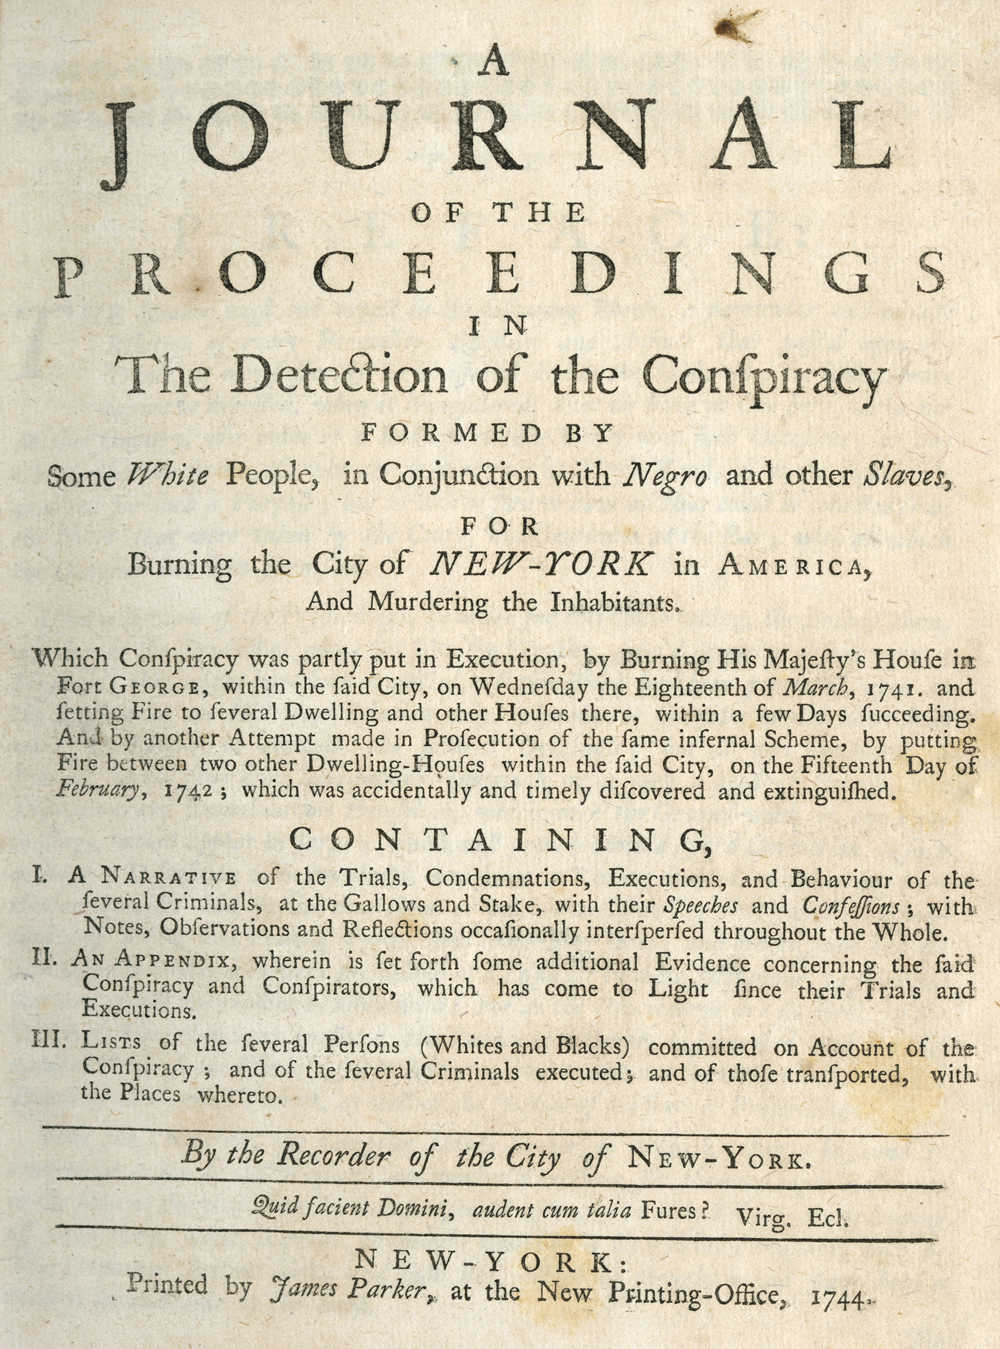 Daniel Horsmanden, A Journal of the Proceedings . . . 1744. (GLC04502.01)